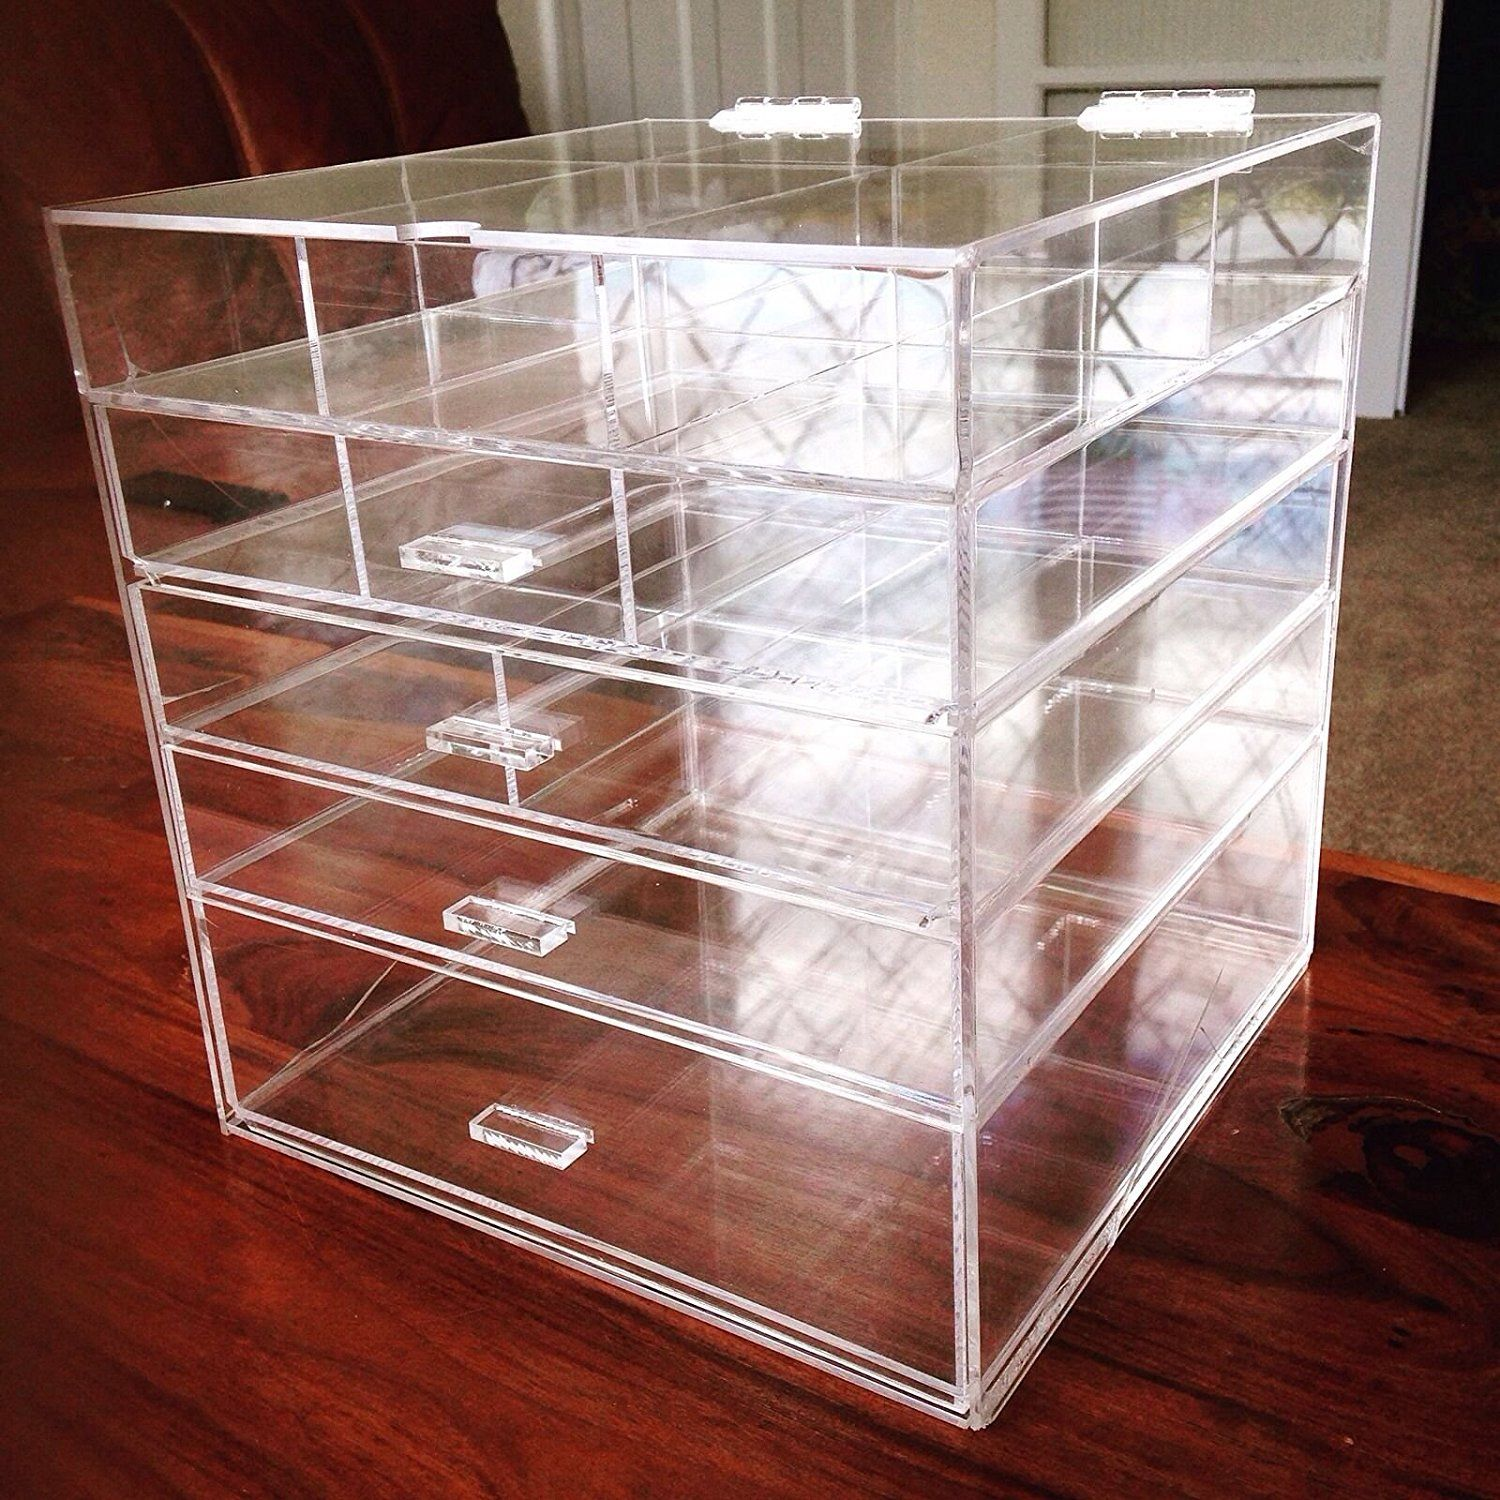 Kardashian Large Beauty Cube 5 Tier Drawers Acrylic Cosmetic